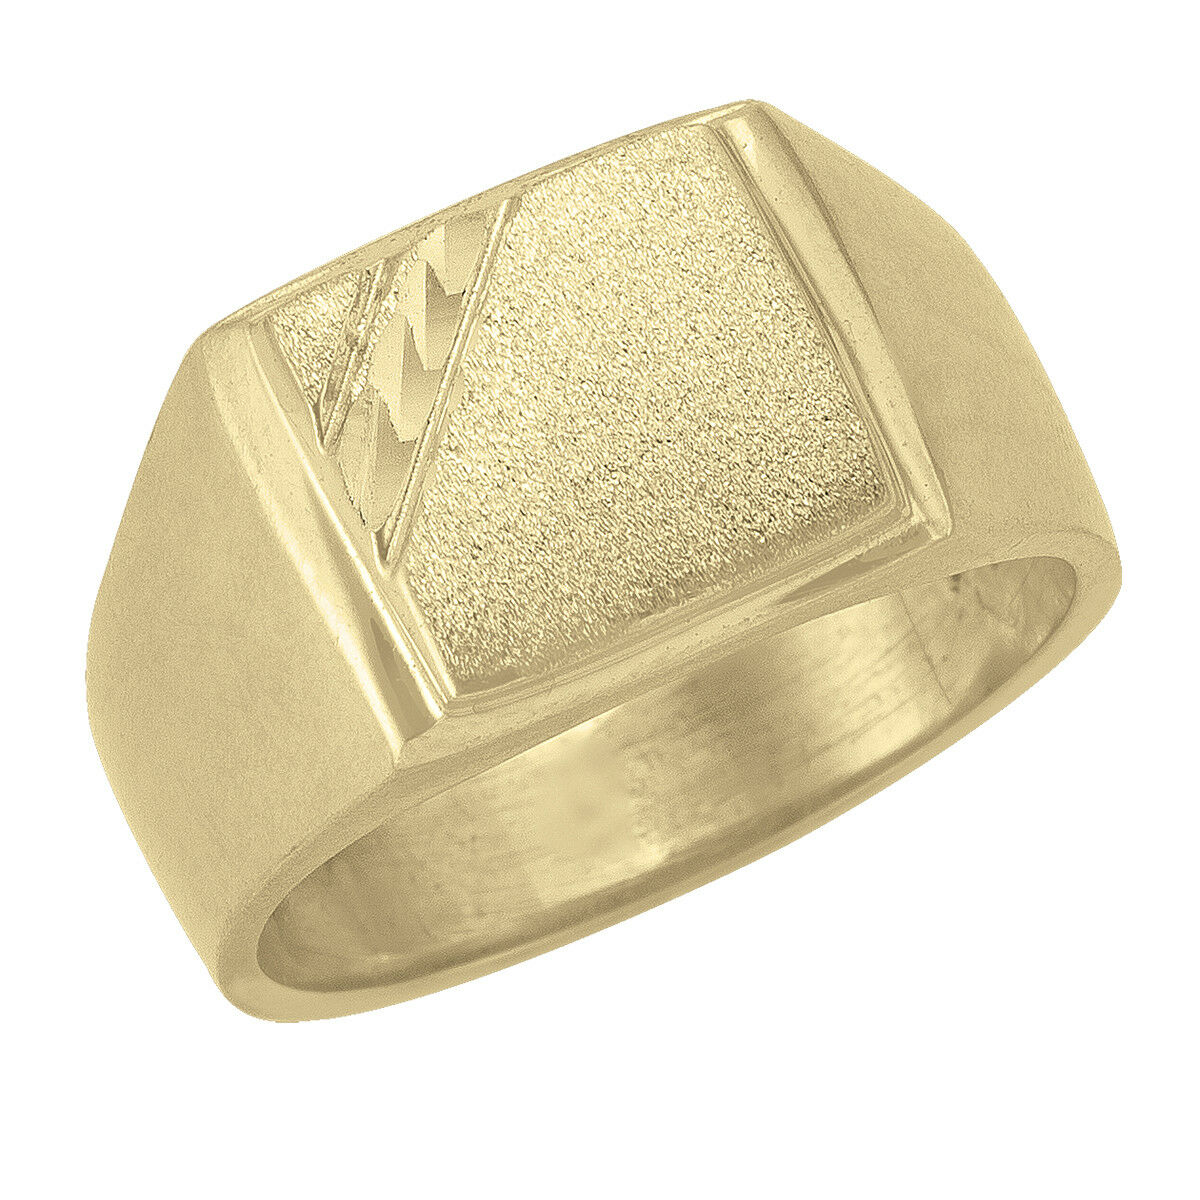 10k Yellow gold square flat top Signet Ring (new, weight 7.41)